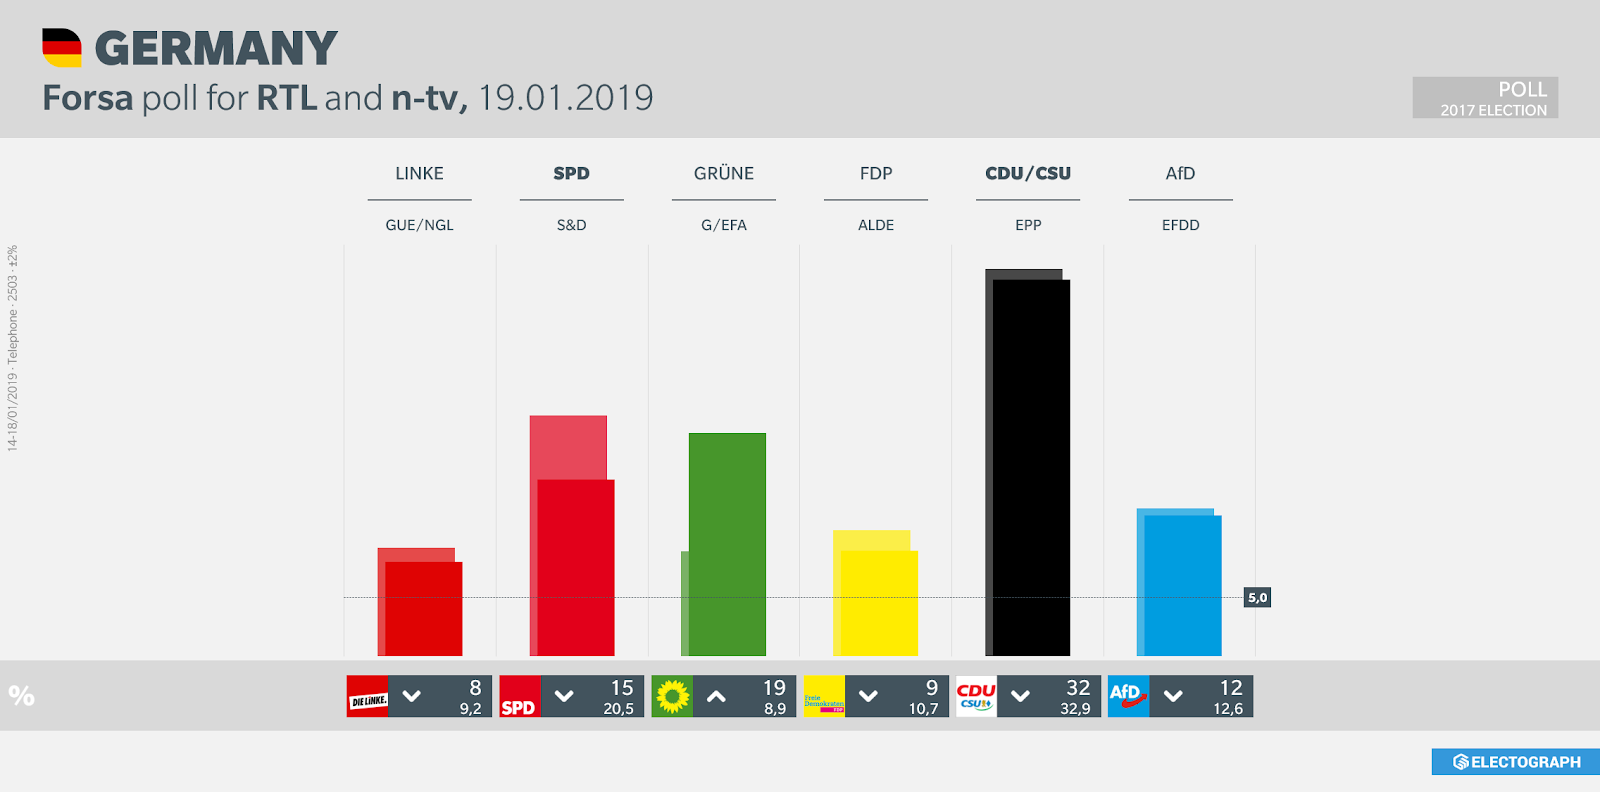 GERMANY: Forsa poll chart for RTL and n-tv, 19 January 2019